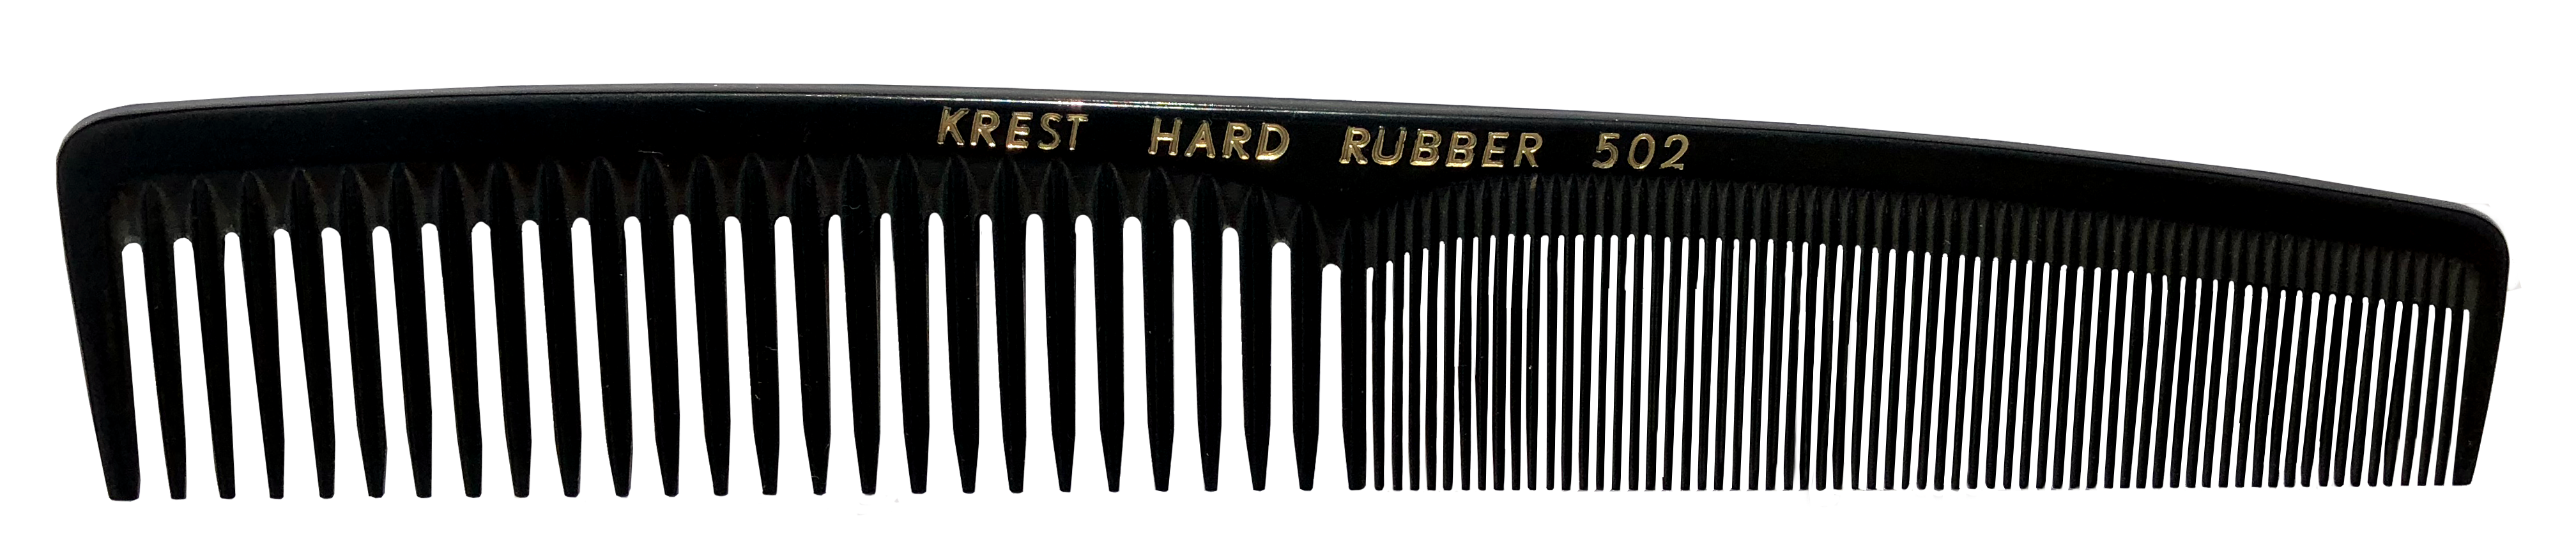 No. 502 Krest Hard Rubber Combs